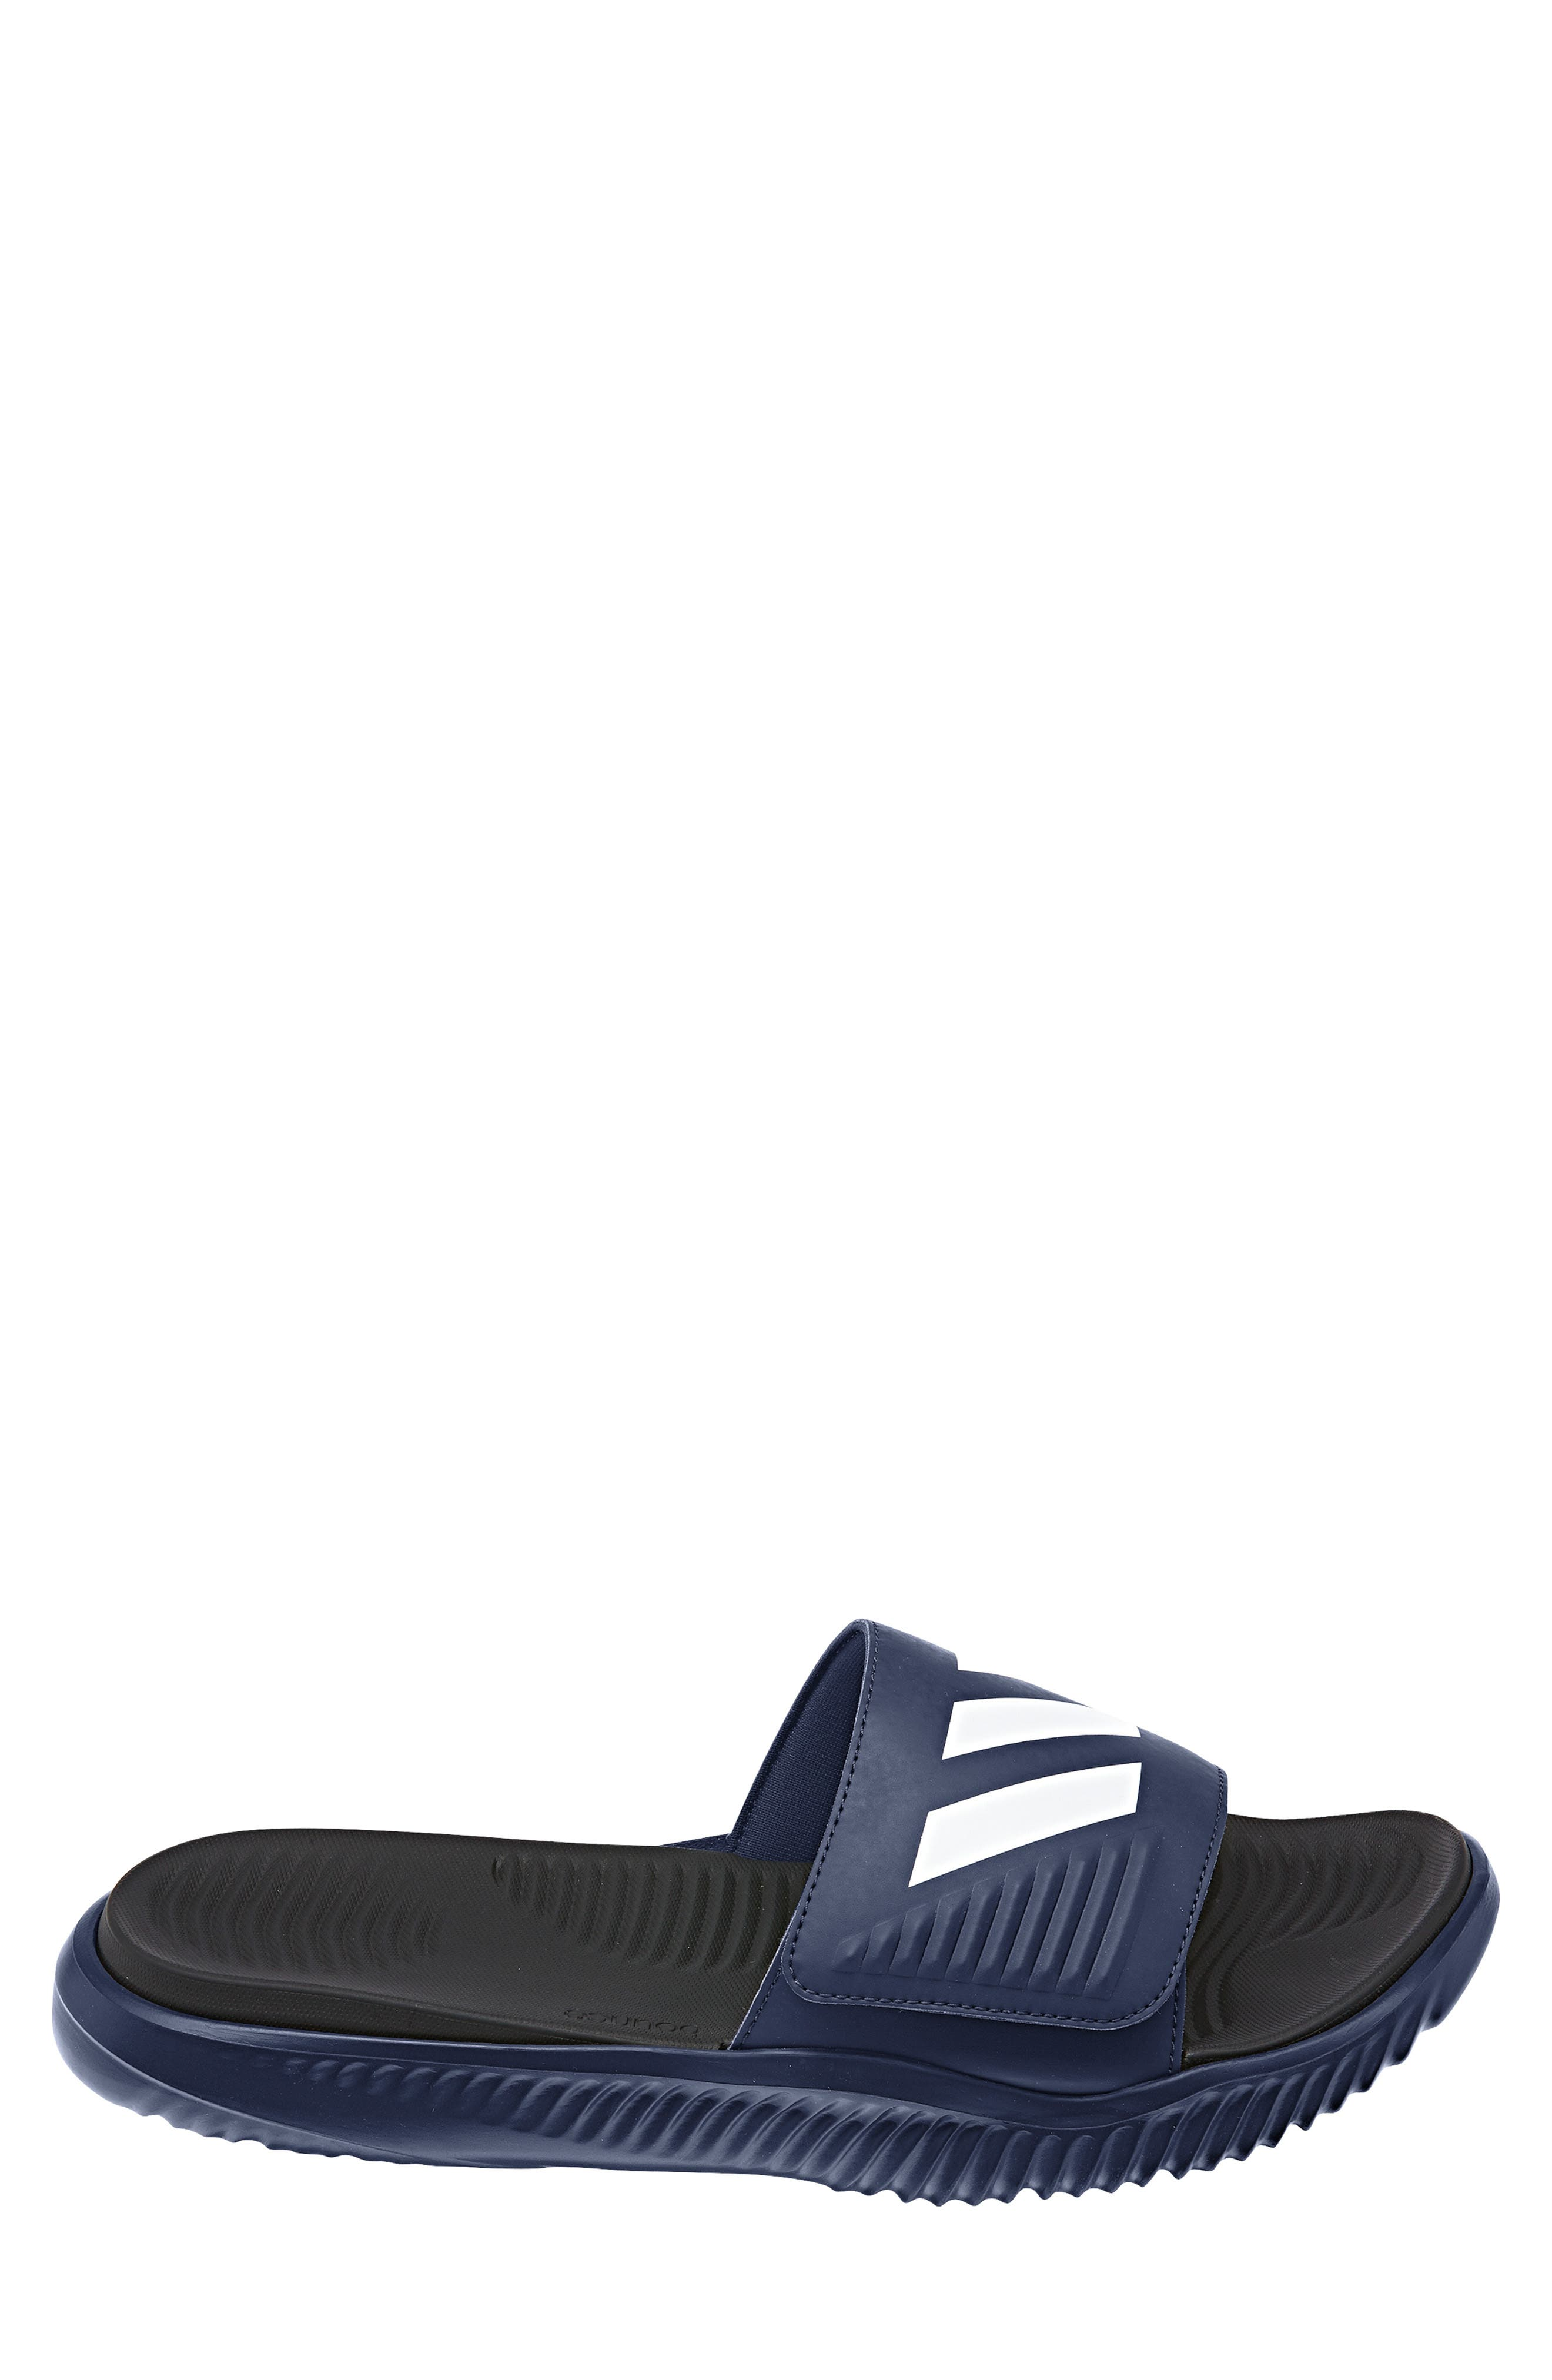 AlphaBounce Slide Sandal,                             Alternate thumbnail 2, color,                             415